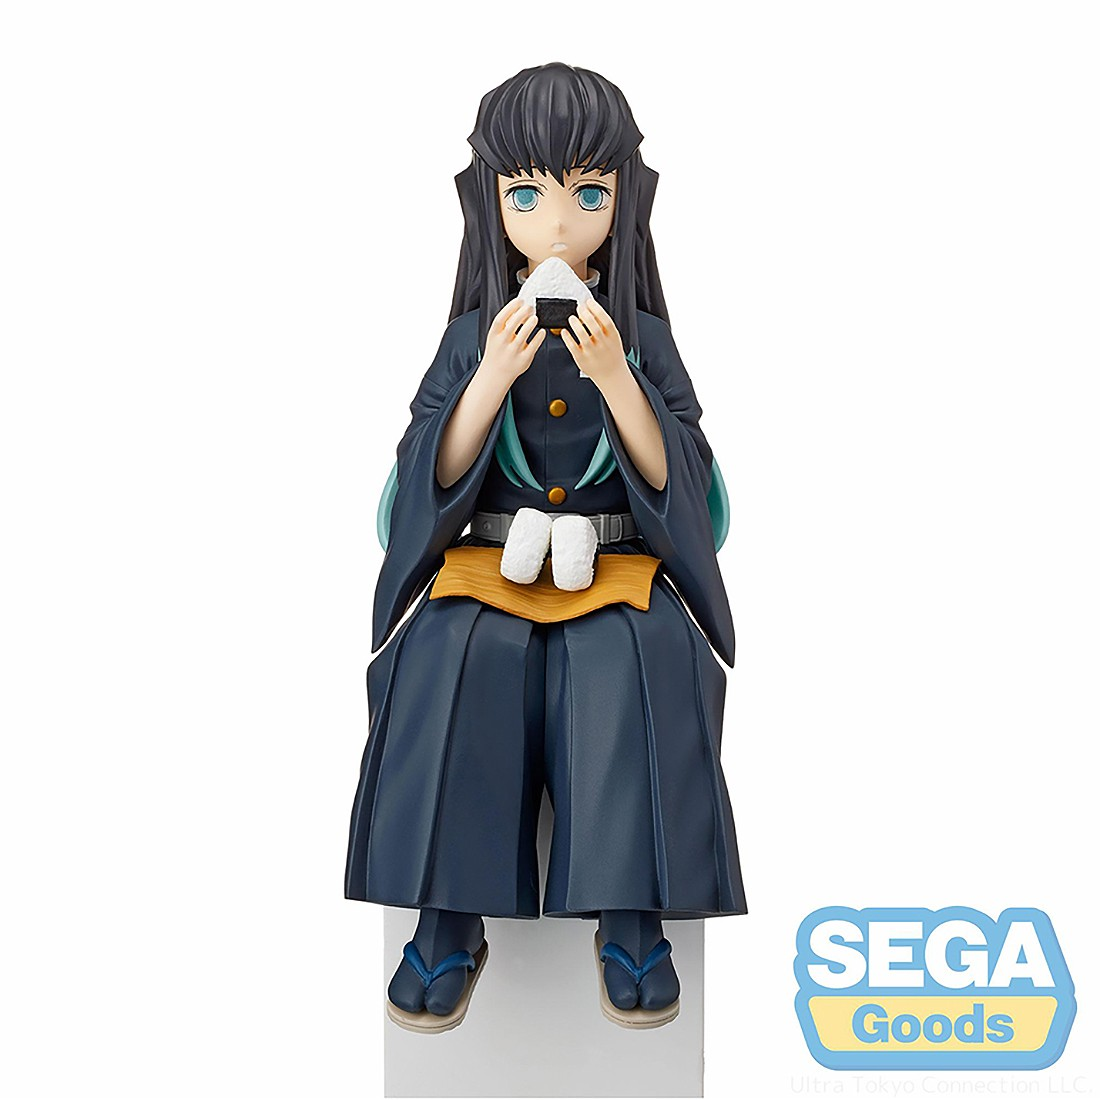 PREORDER - Sega Demon Slayer Kimetsu no Yaiba Muichiro Tokito PM Perching Figure (navy)